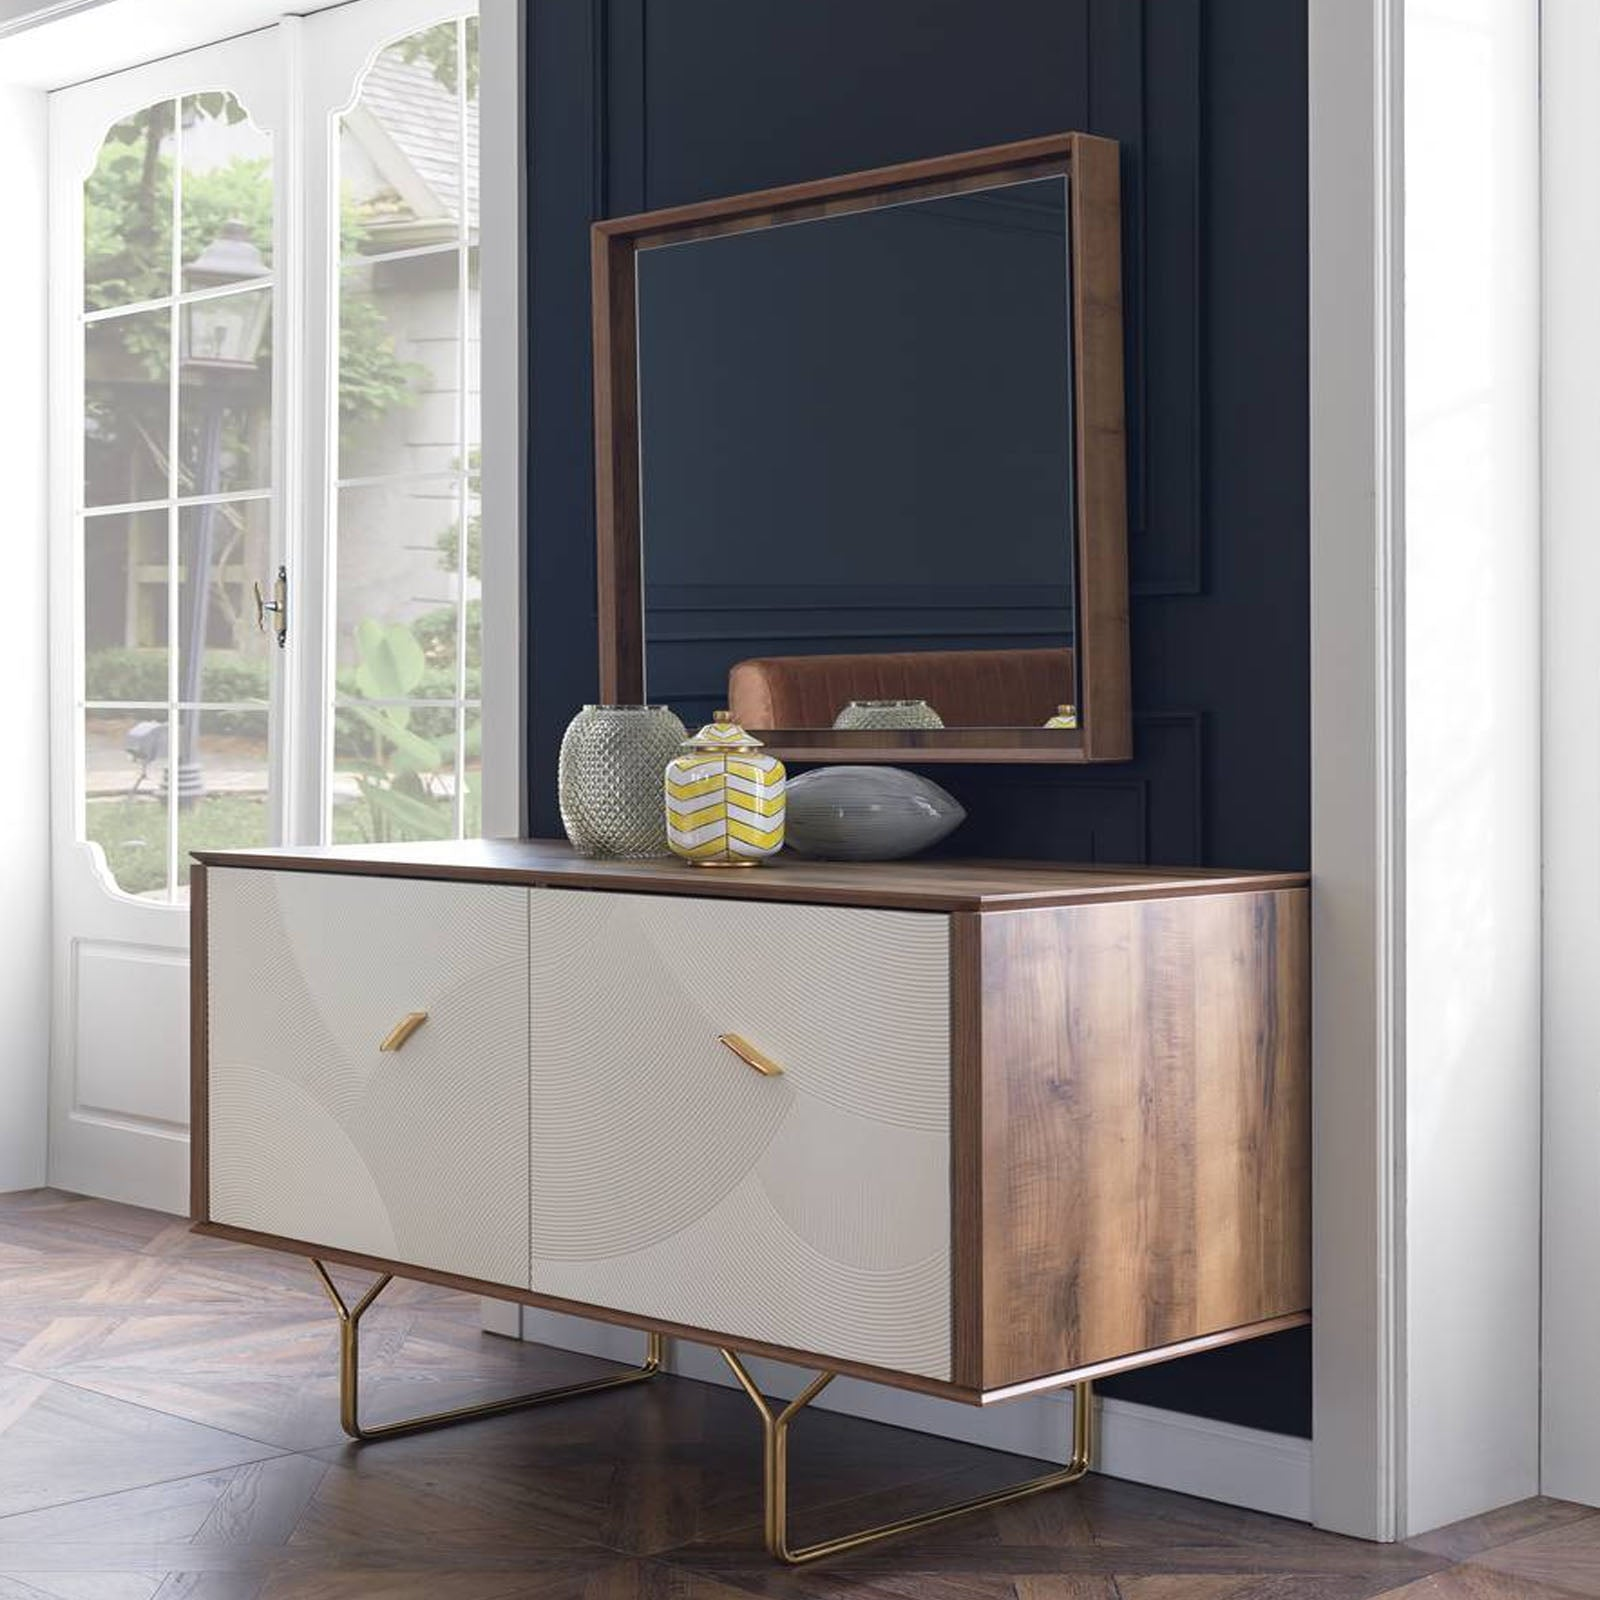 Pre-Order 25 days delivery PENA  Dresser+Mirror  PENA002-Dresser -  الطلب المسبق 25 يومًا تسليم بينا مضمد + مرآة - Shop Online Furniture and Home Decor Store in Dubai, UAE at ebarza